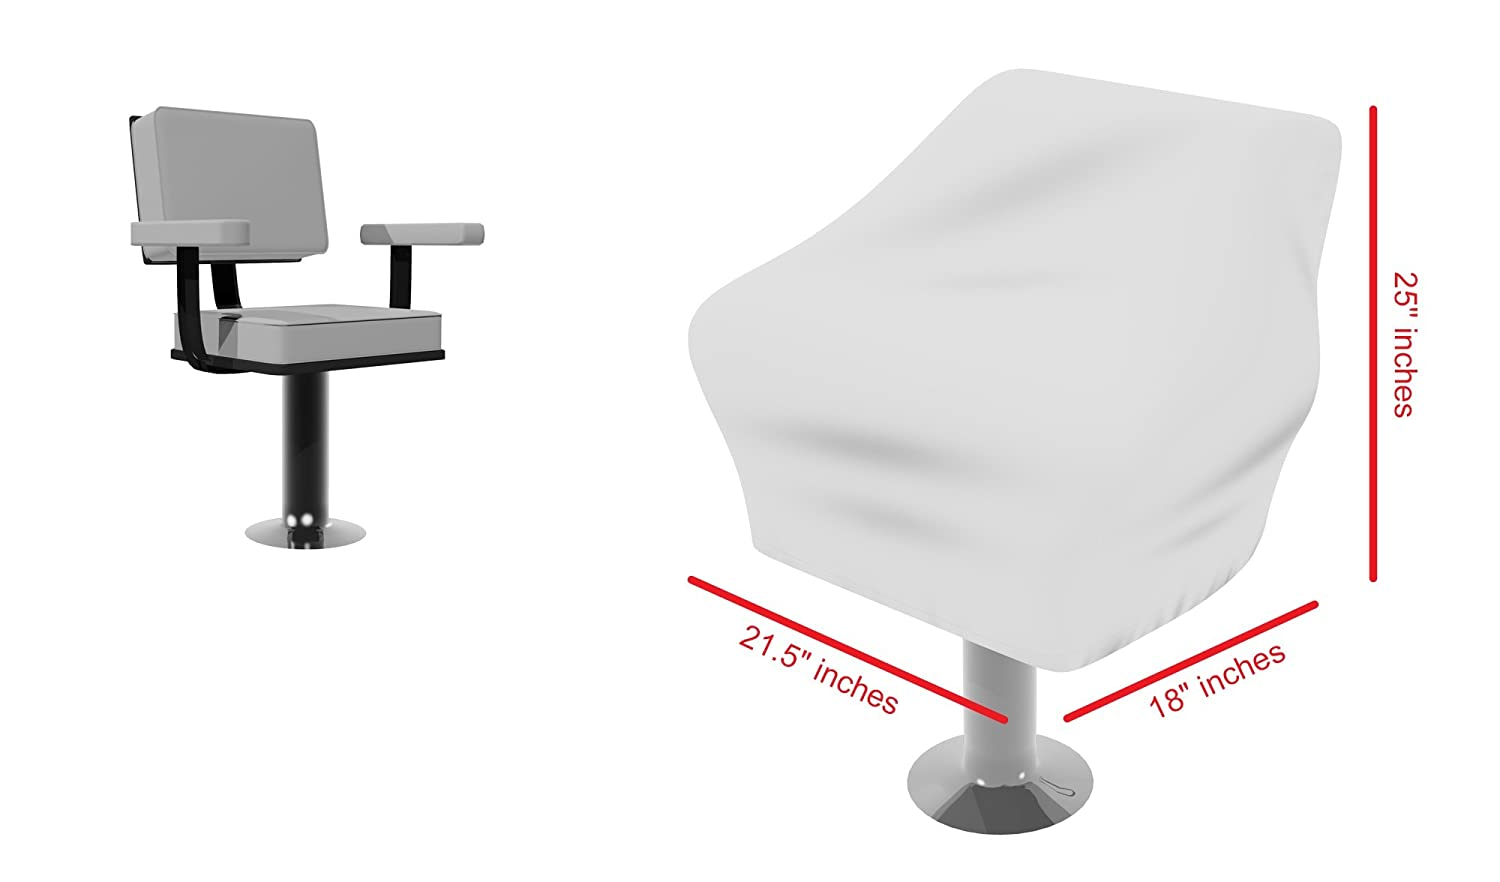 Weather Resistant Marine Canvas Set of 2 Color White Boat Seat Covers Fits Over the Chair and Armrest Superior Fabric to Protect Captain/'s Chair from The Elements Sun-Protect Marine Canvas